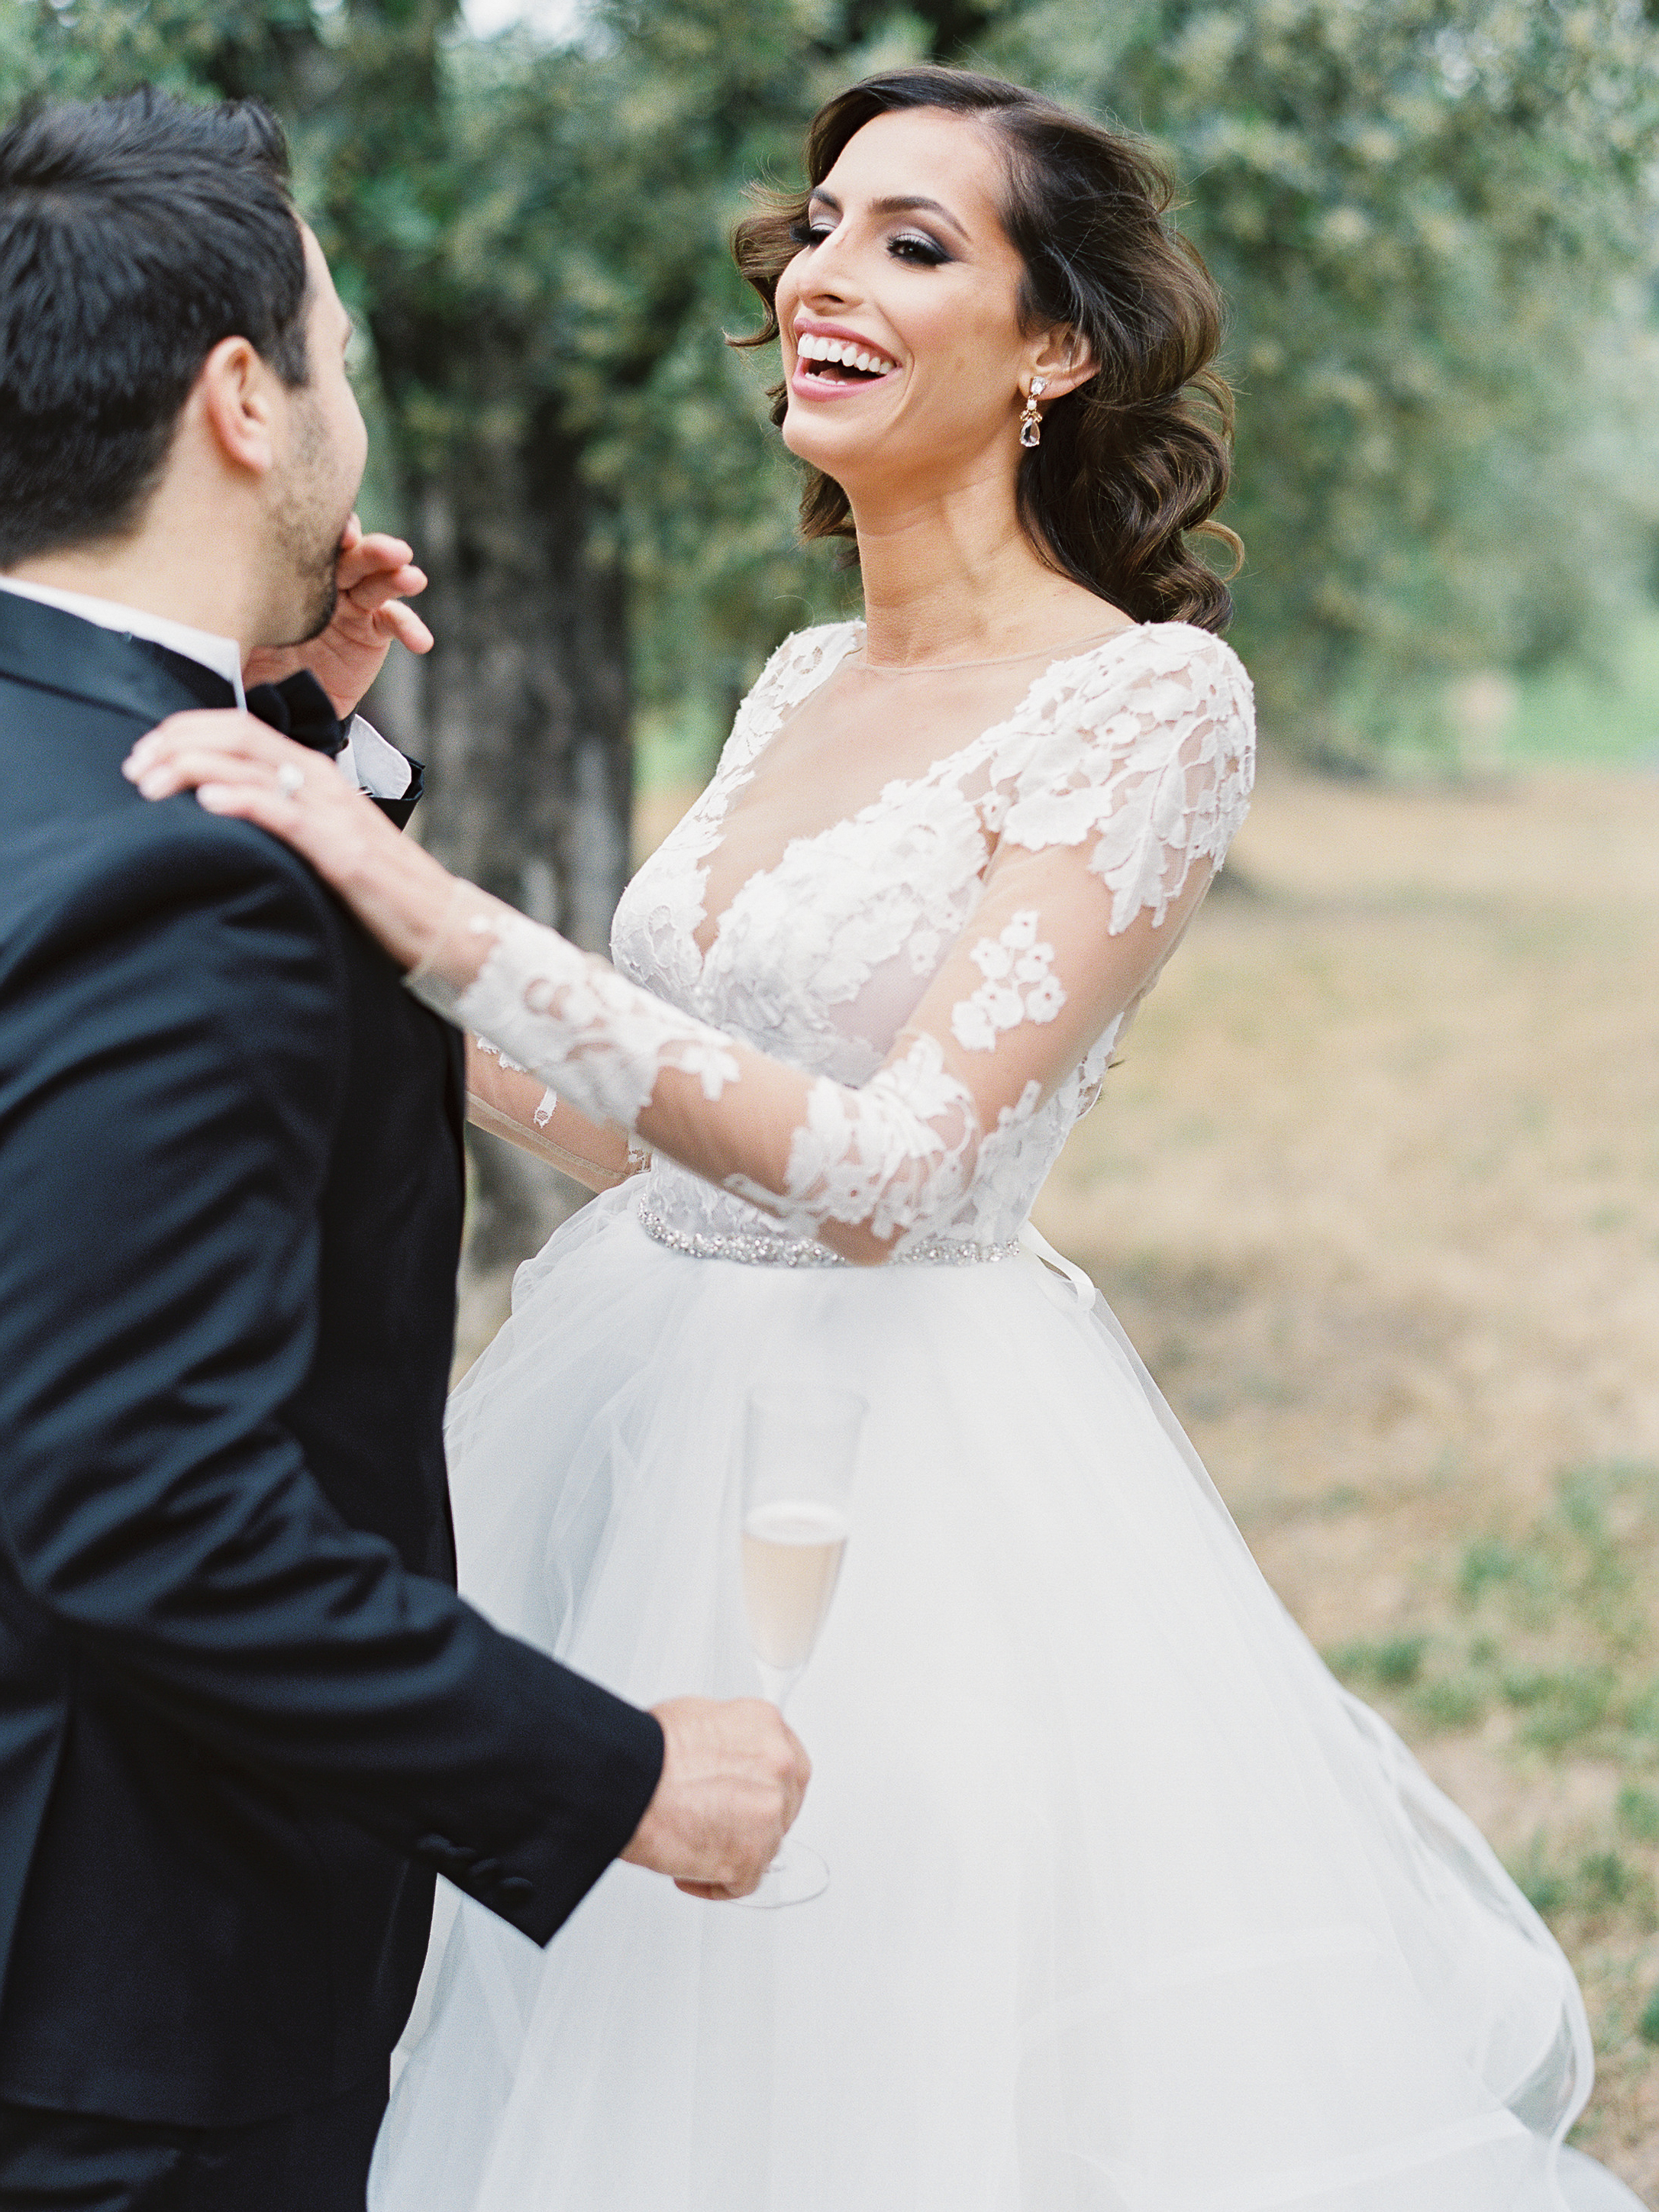 Meghan Mehan Photography | Fine Art Film Wedding Photographer | California | San Francisco | Napa | Sonoma | Santa Barbara | Big Sur | Destination Wedding Photographer 025.jpg